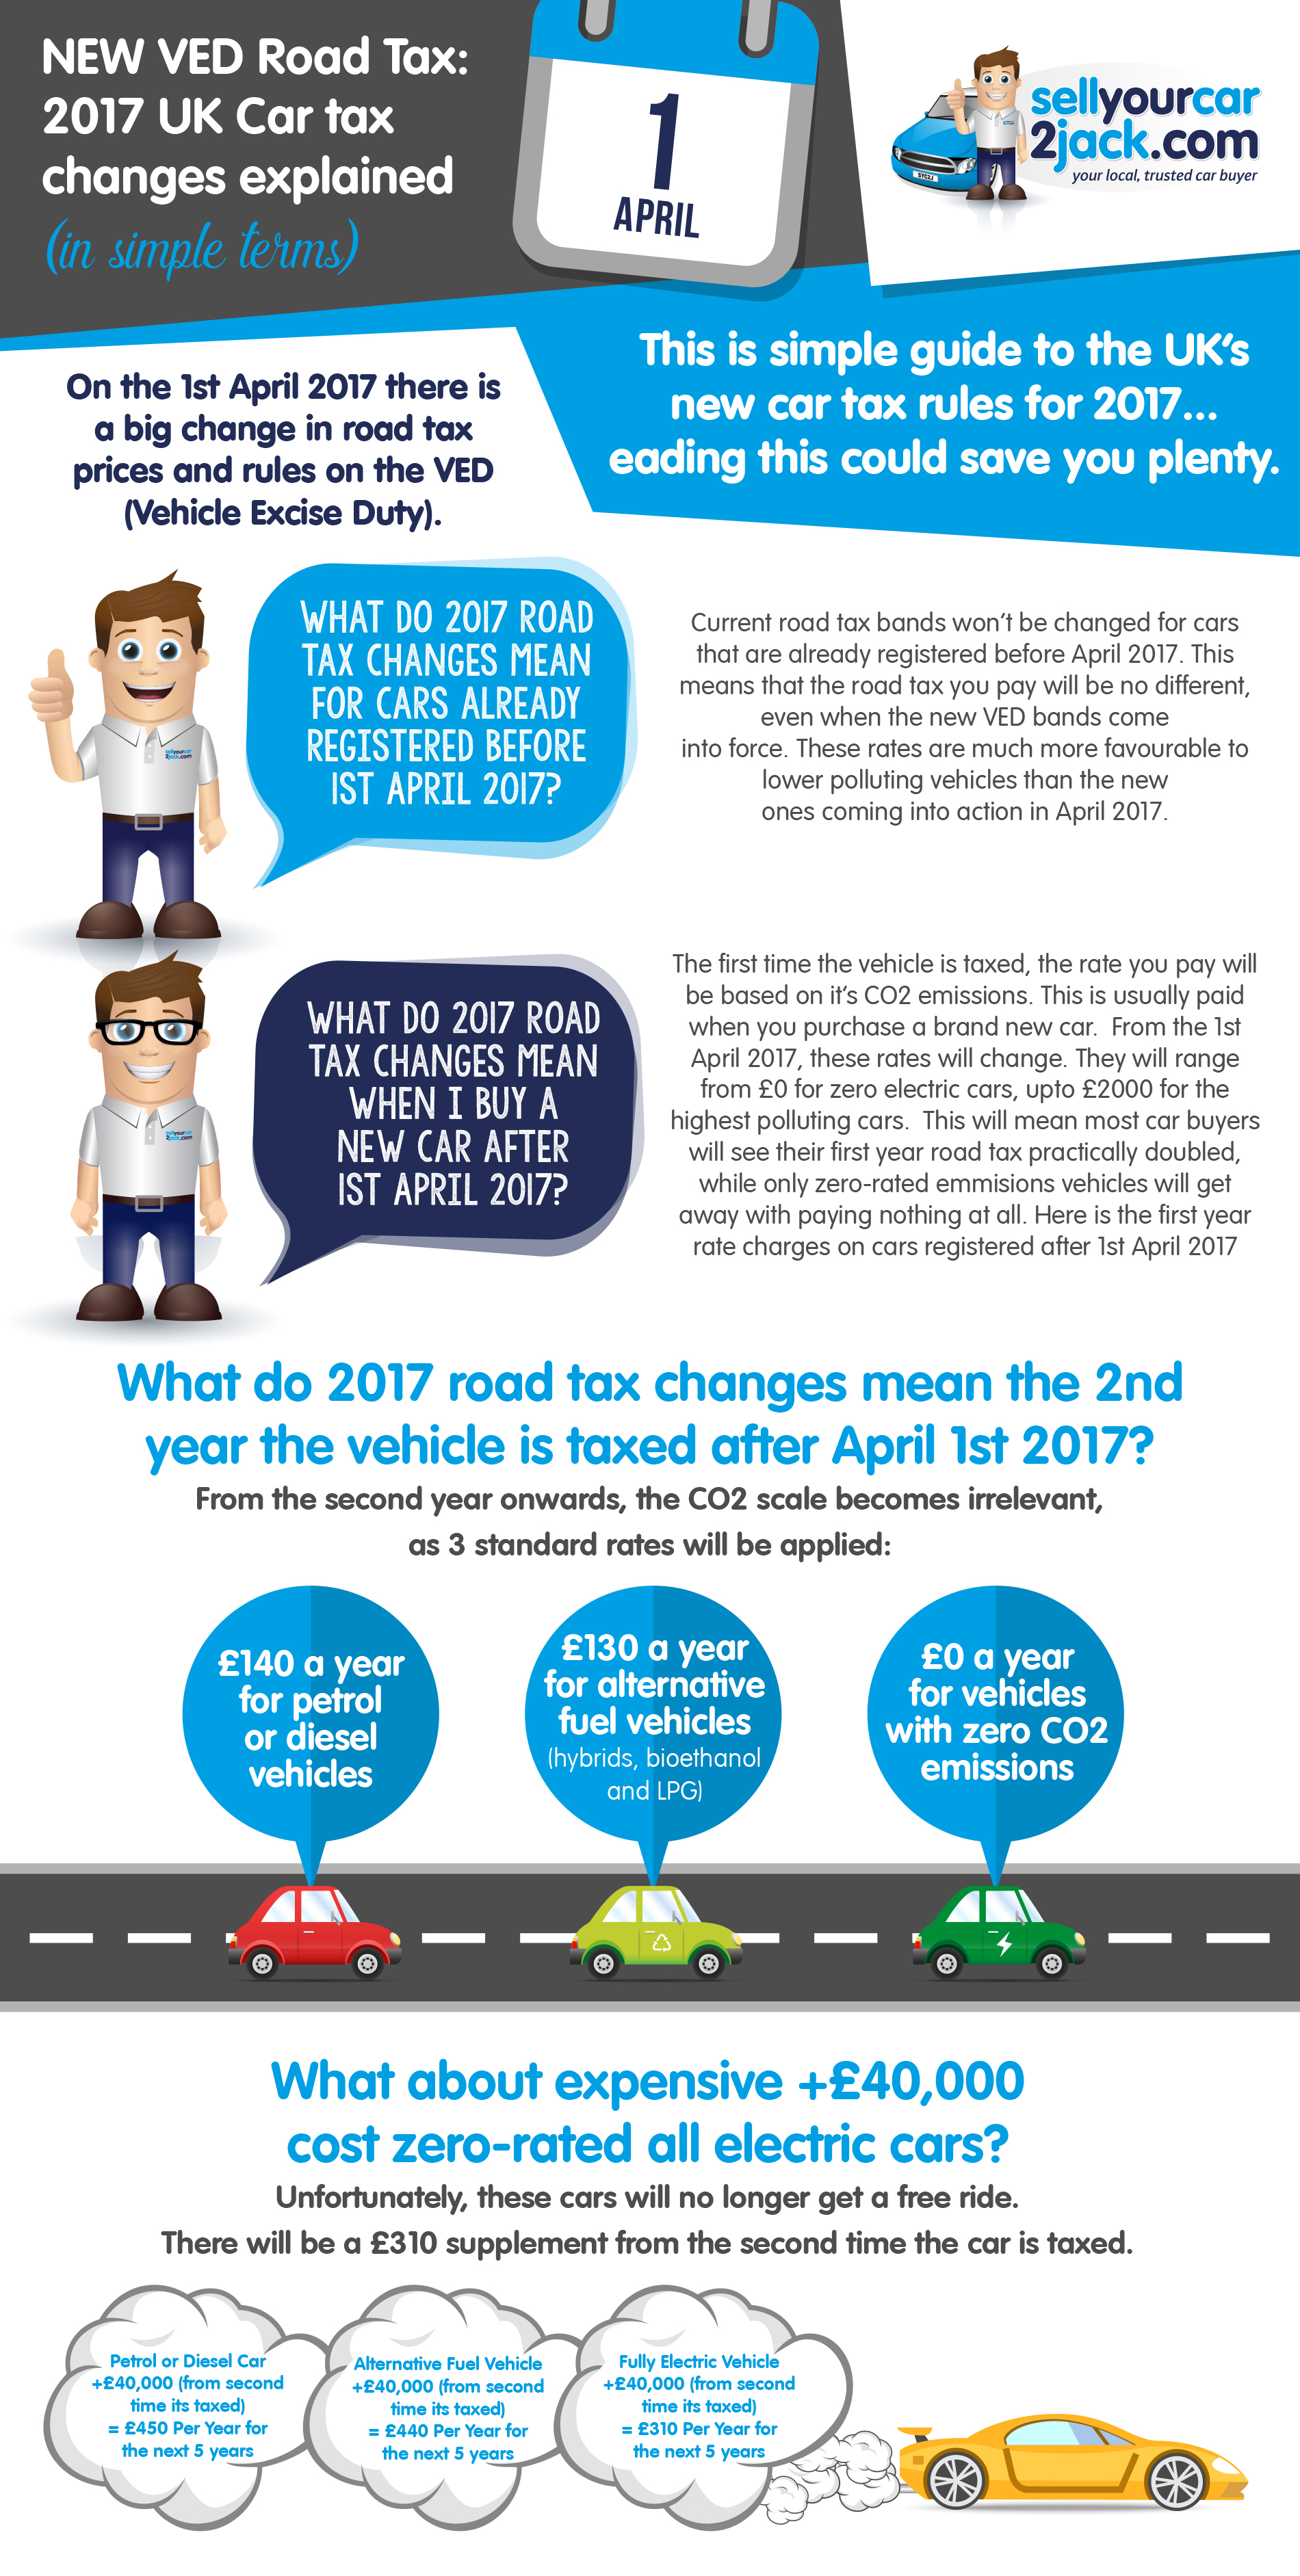 New VED Road Tax: 2017 UK Car Tax Change Explained